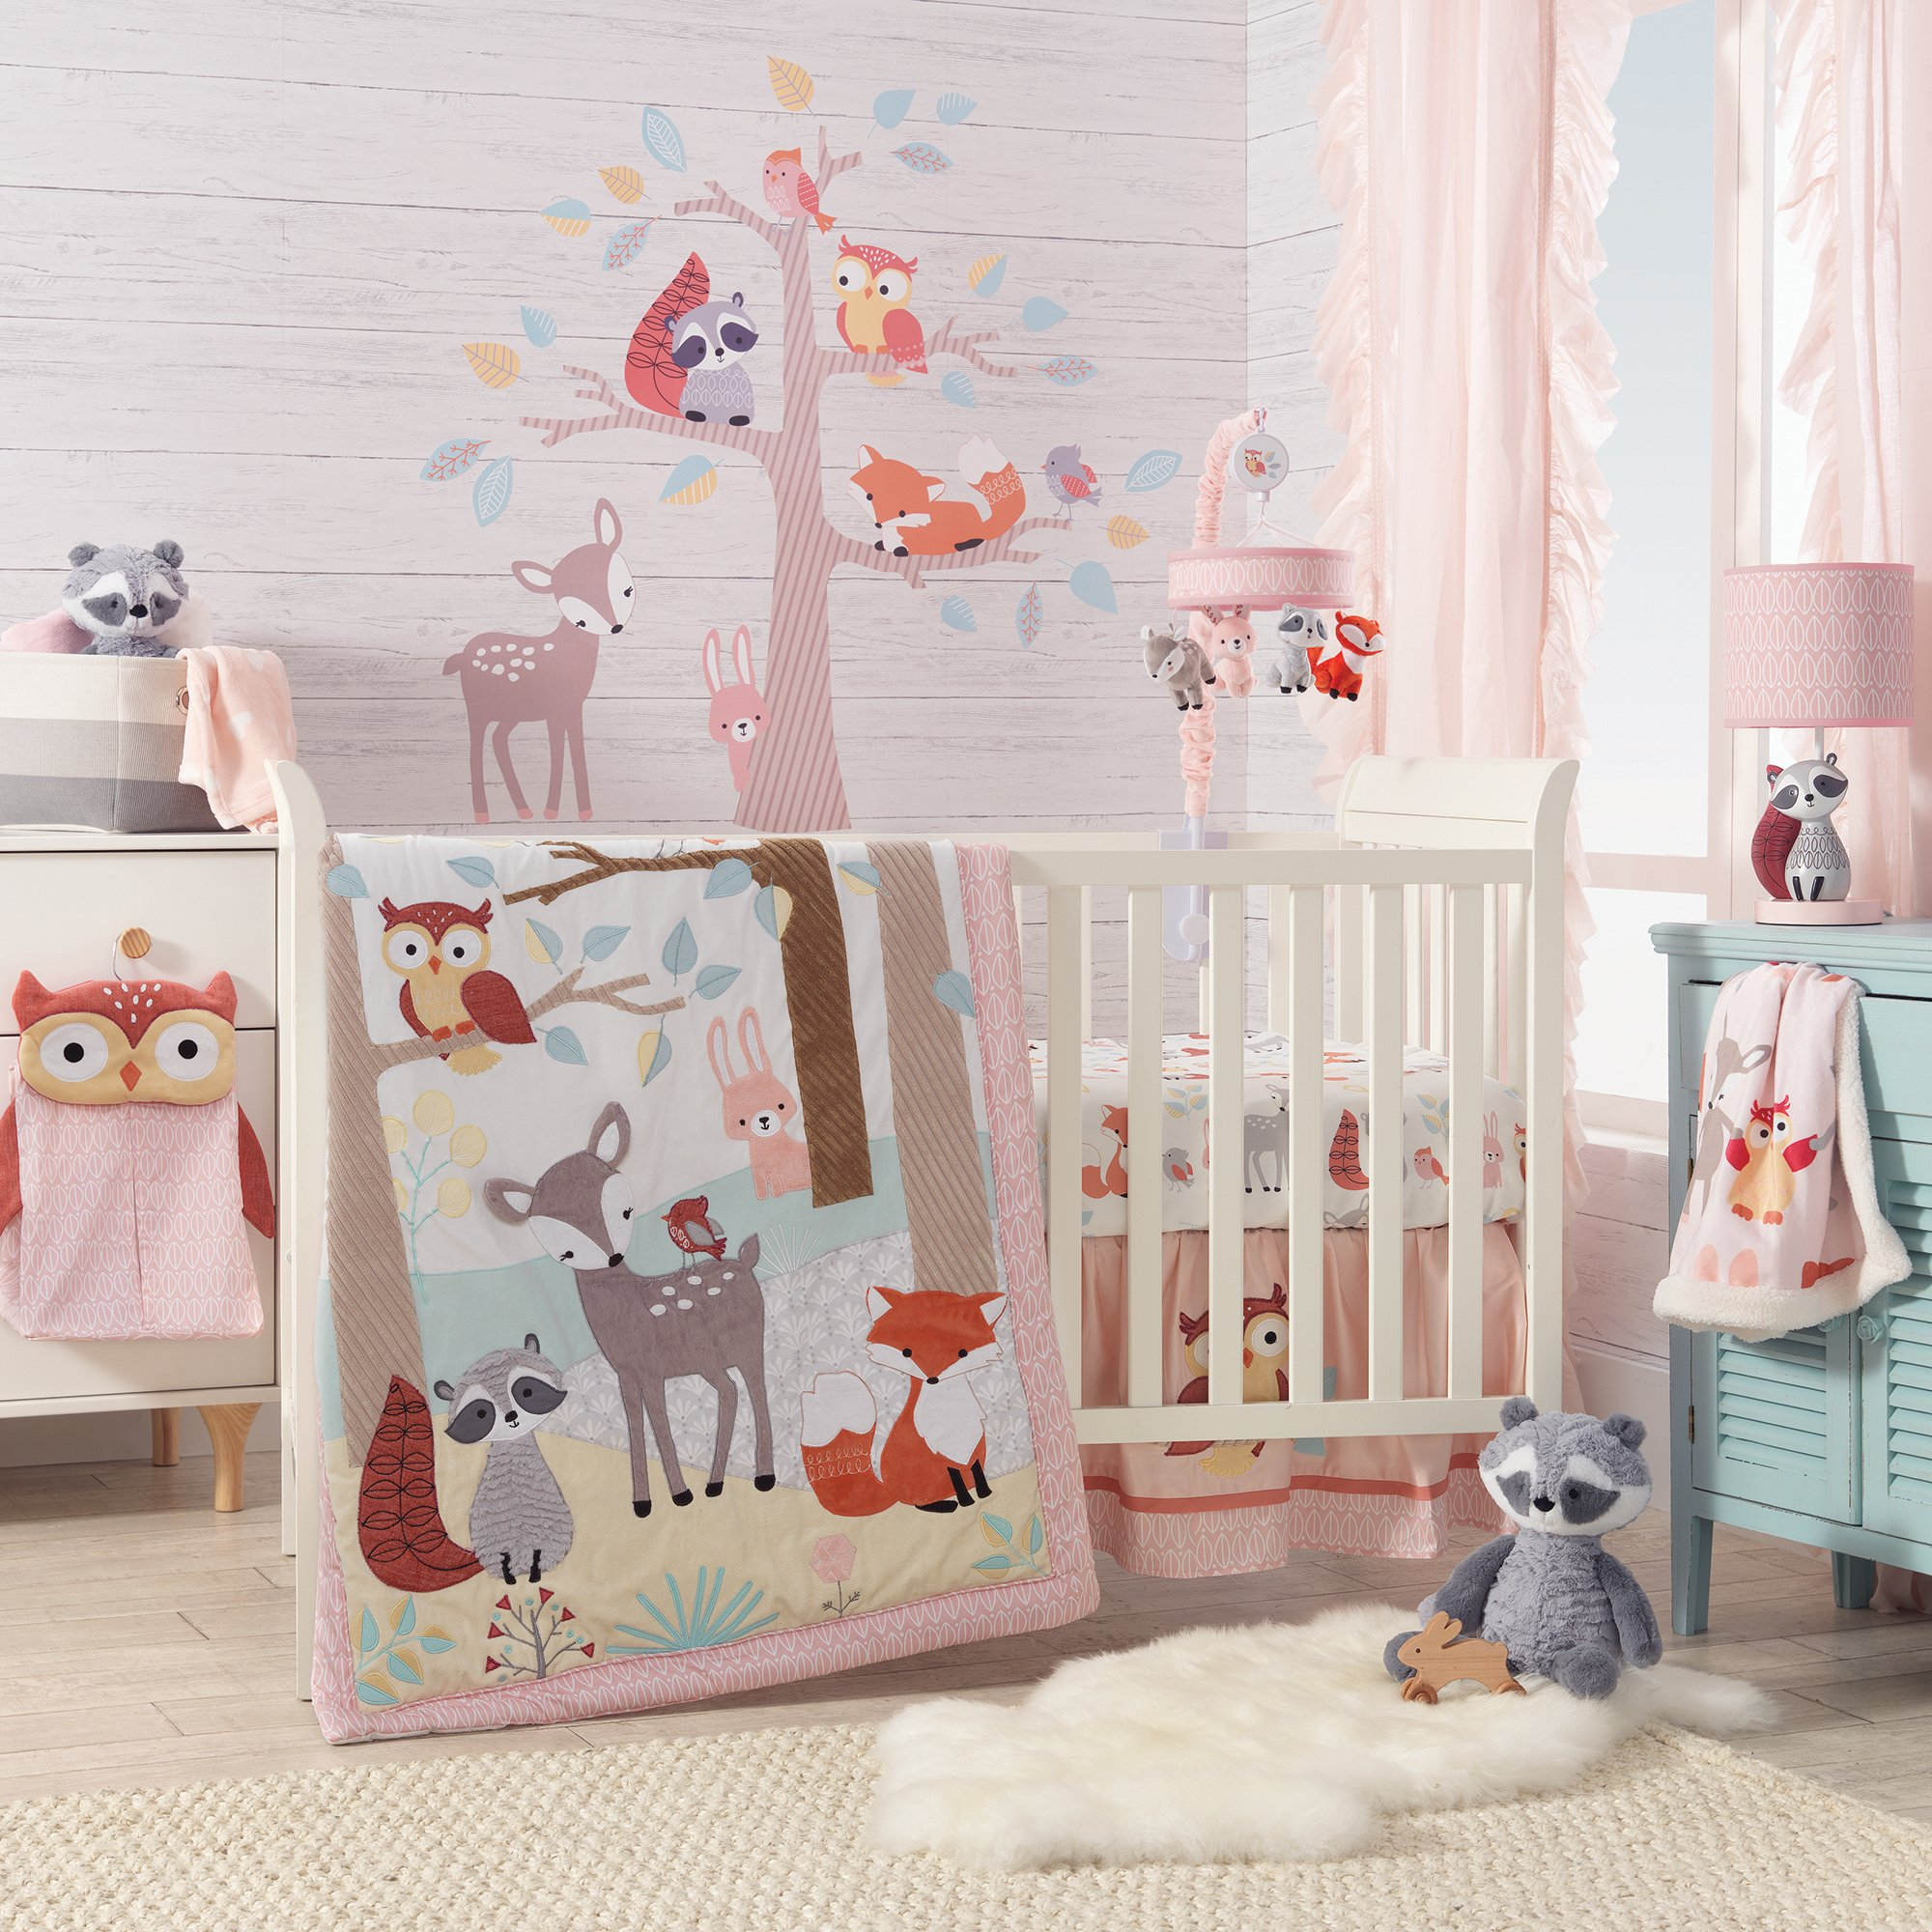 Lambs & Ivy Little Woodland 4-Piece Crib Bedding Set - White, Coral, Animals